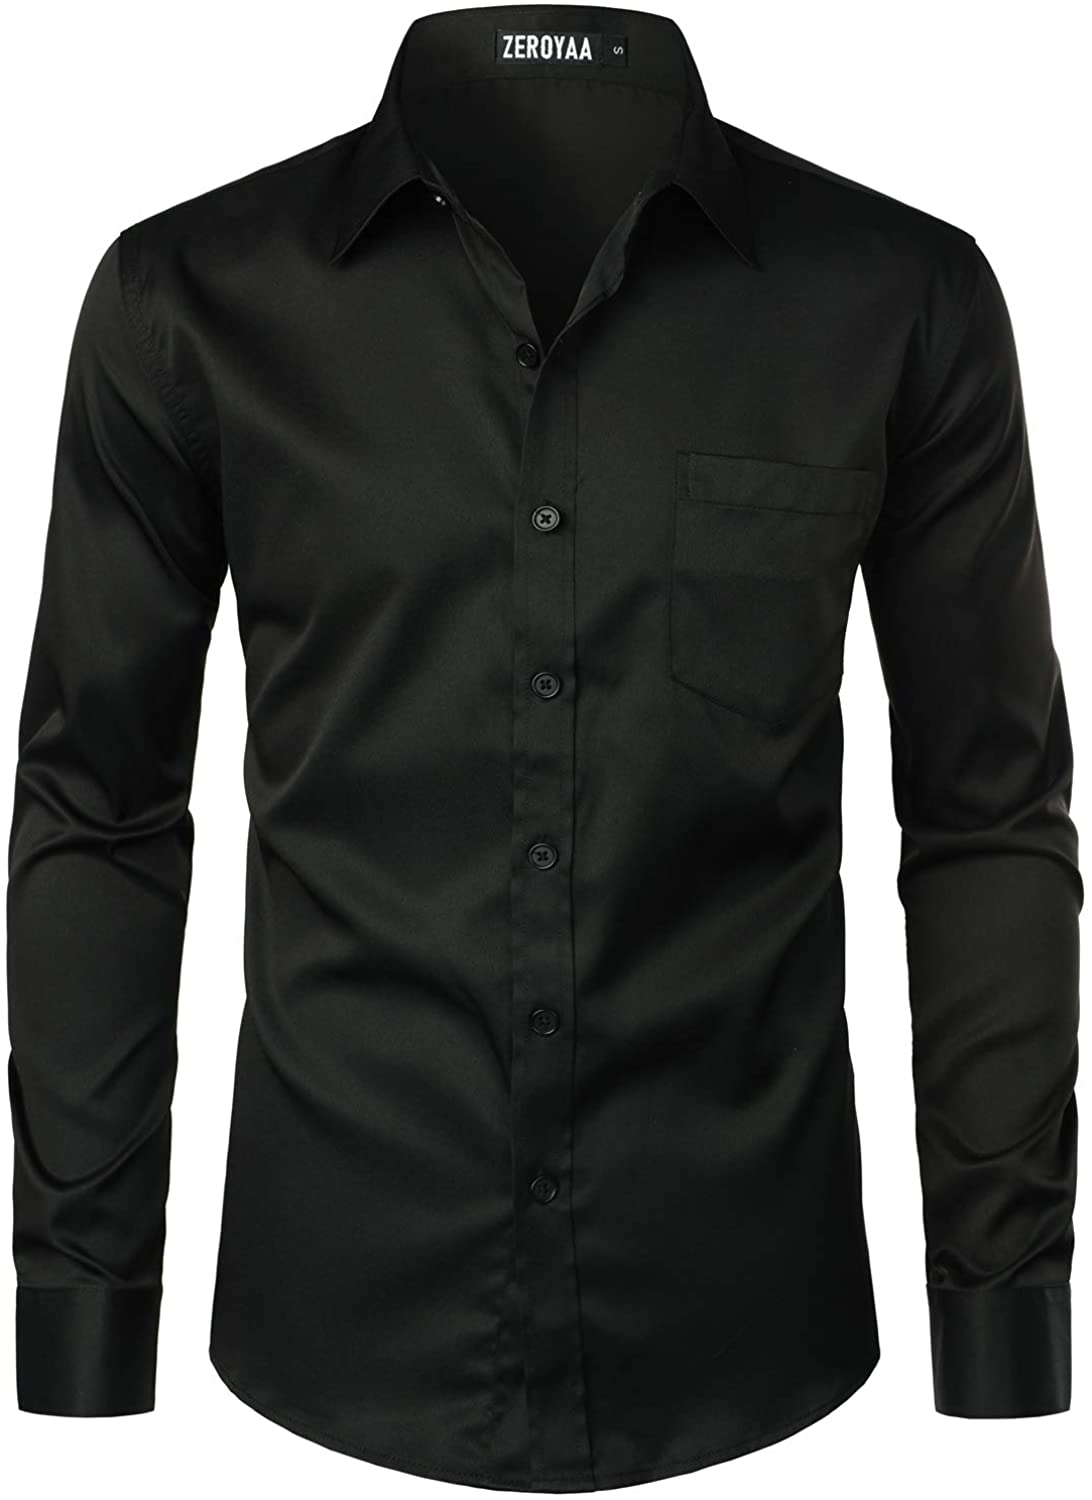 ZEROYAA Men's Urban Stylish Casual Business Slim Fit Long Sleeve Button Up Dress Shirt with Pocket